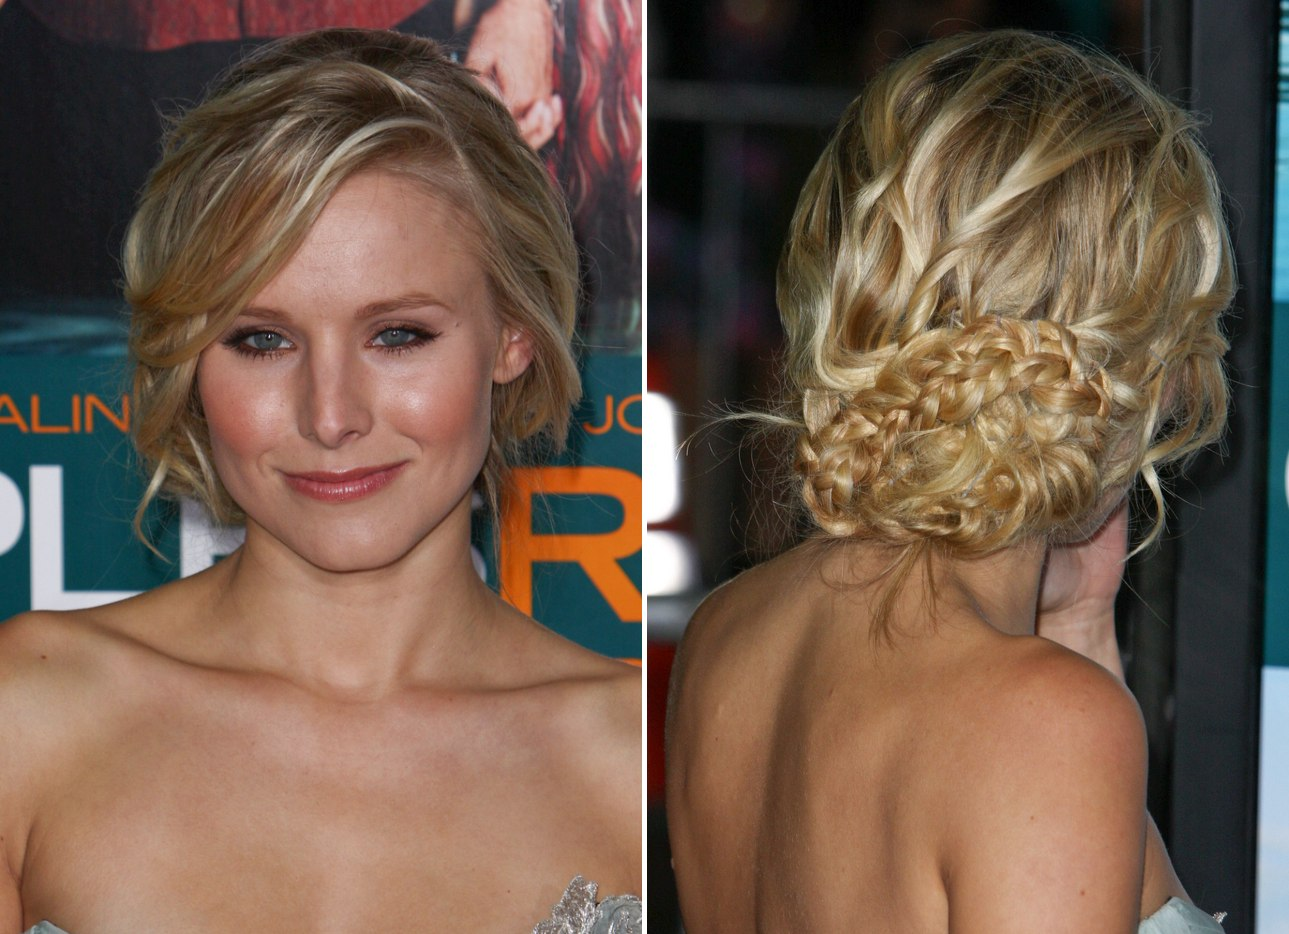 Kristen Bells Up Style With A Braid And Lauren Ambrose With Long